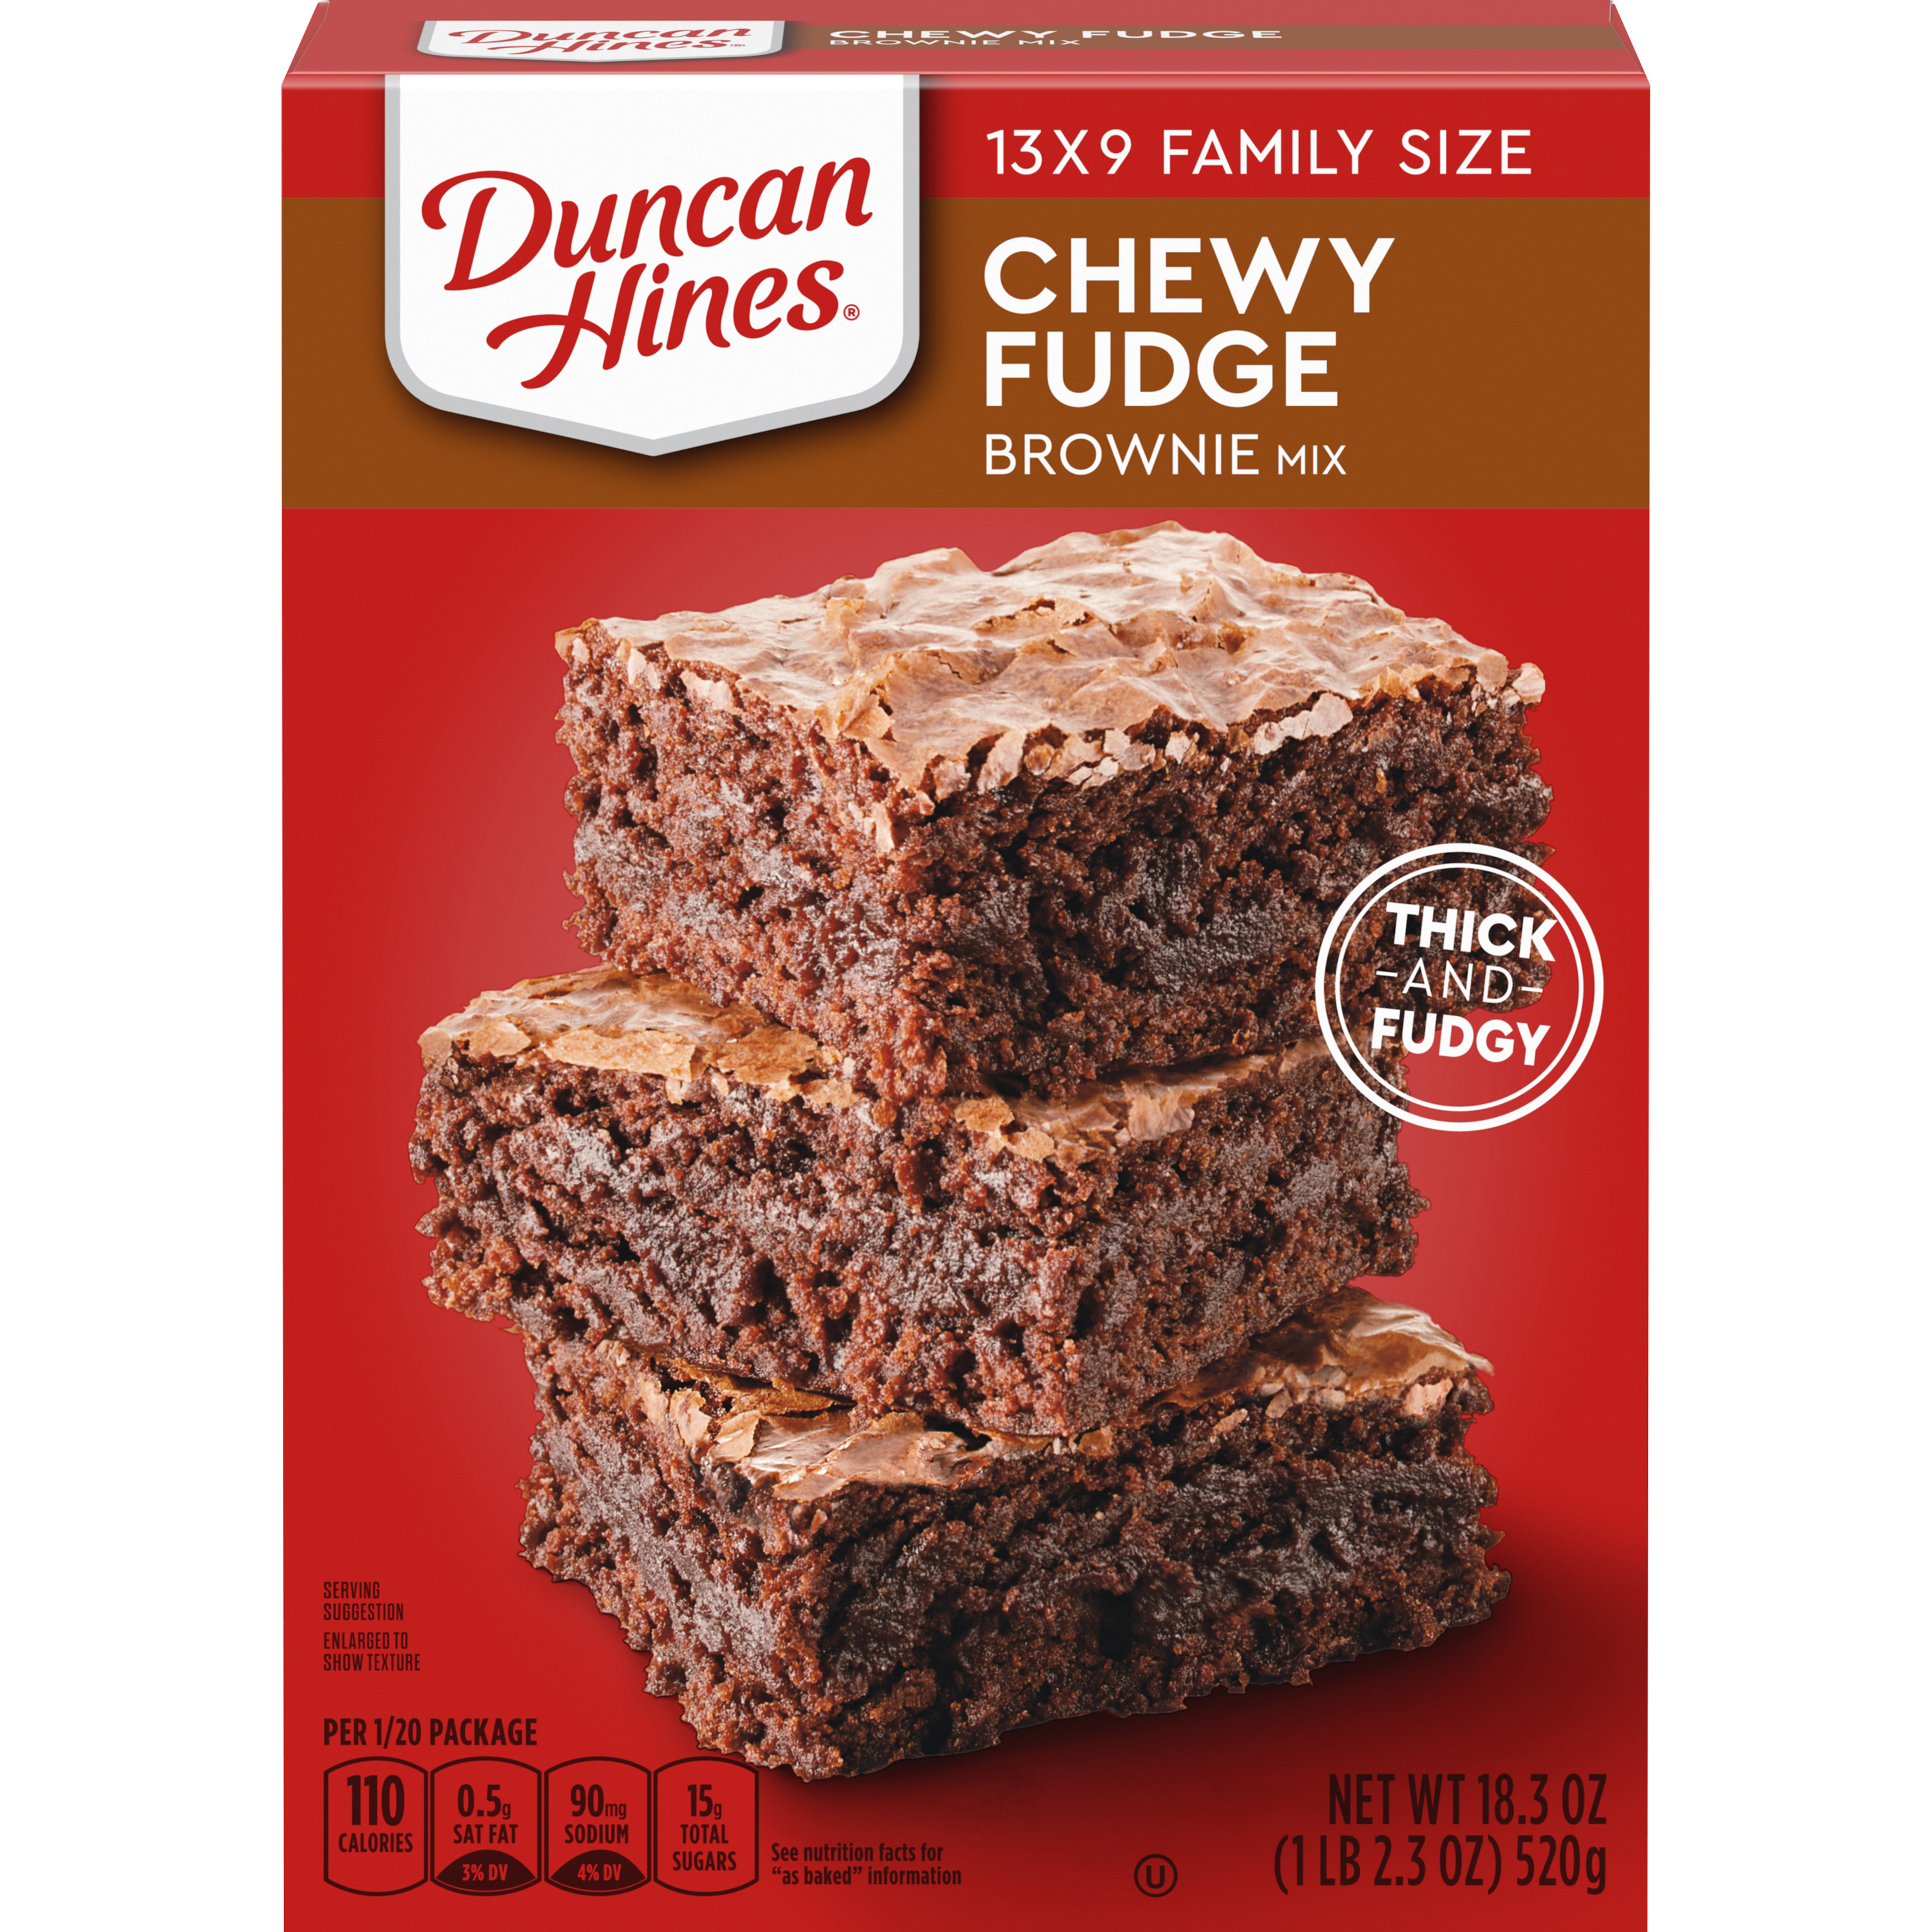 Duncan Hines Brownie Mix Chewy Fudge Brownies Family Size Box - 18.3 Oz